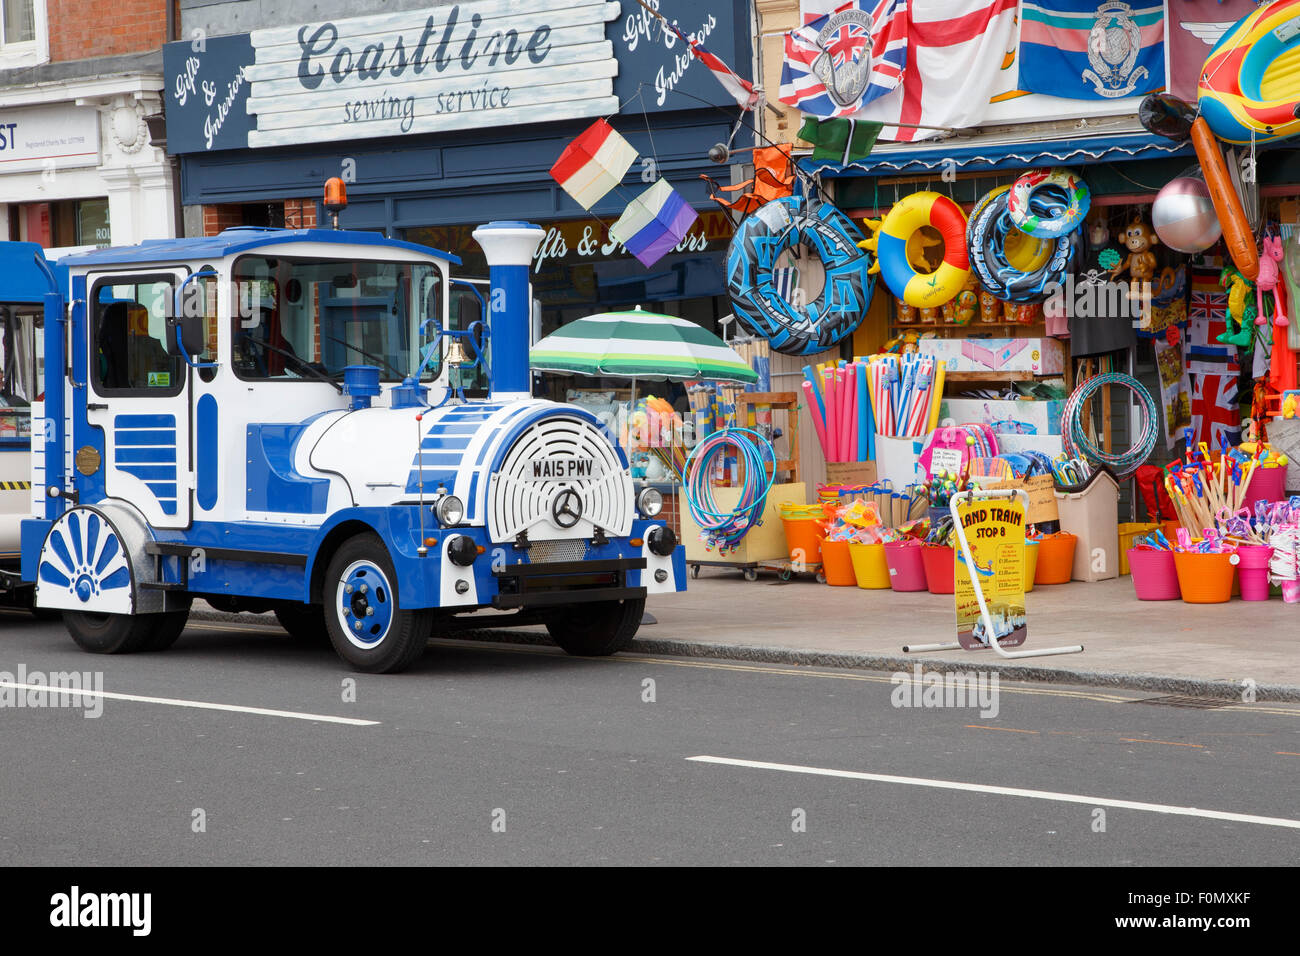 The 'land train' tourist ride in Exmouth, stopping outside a beach shop. Stock Photo